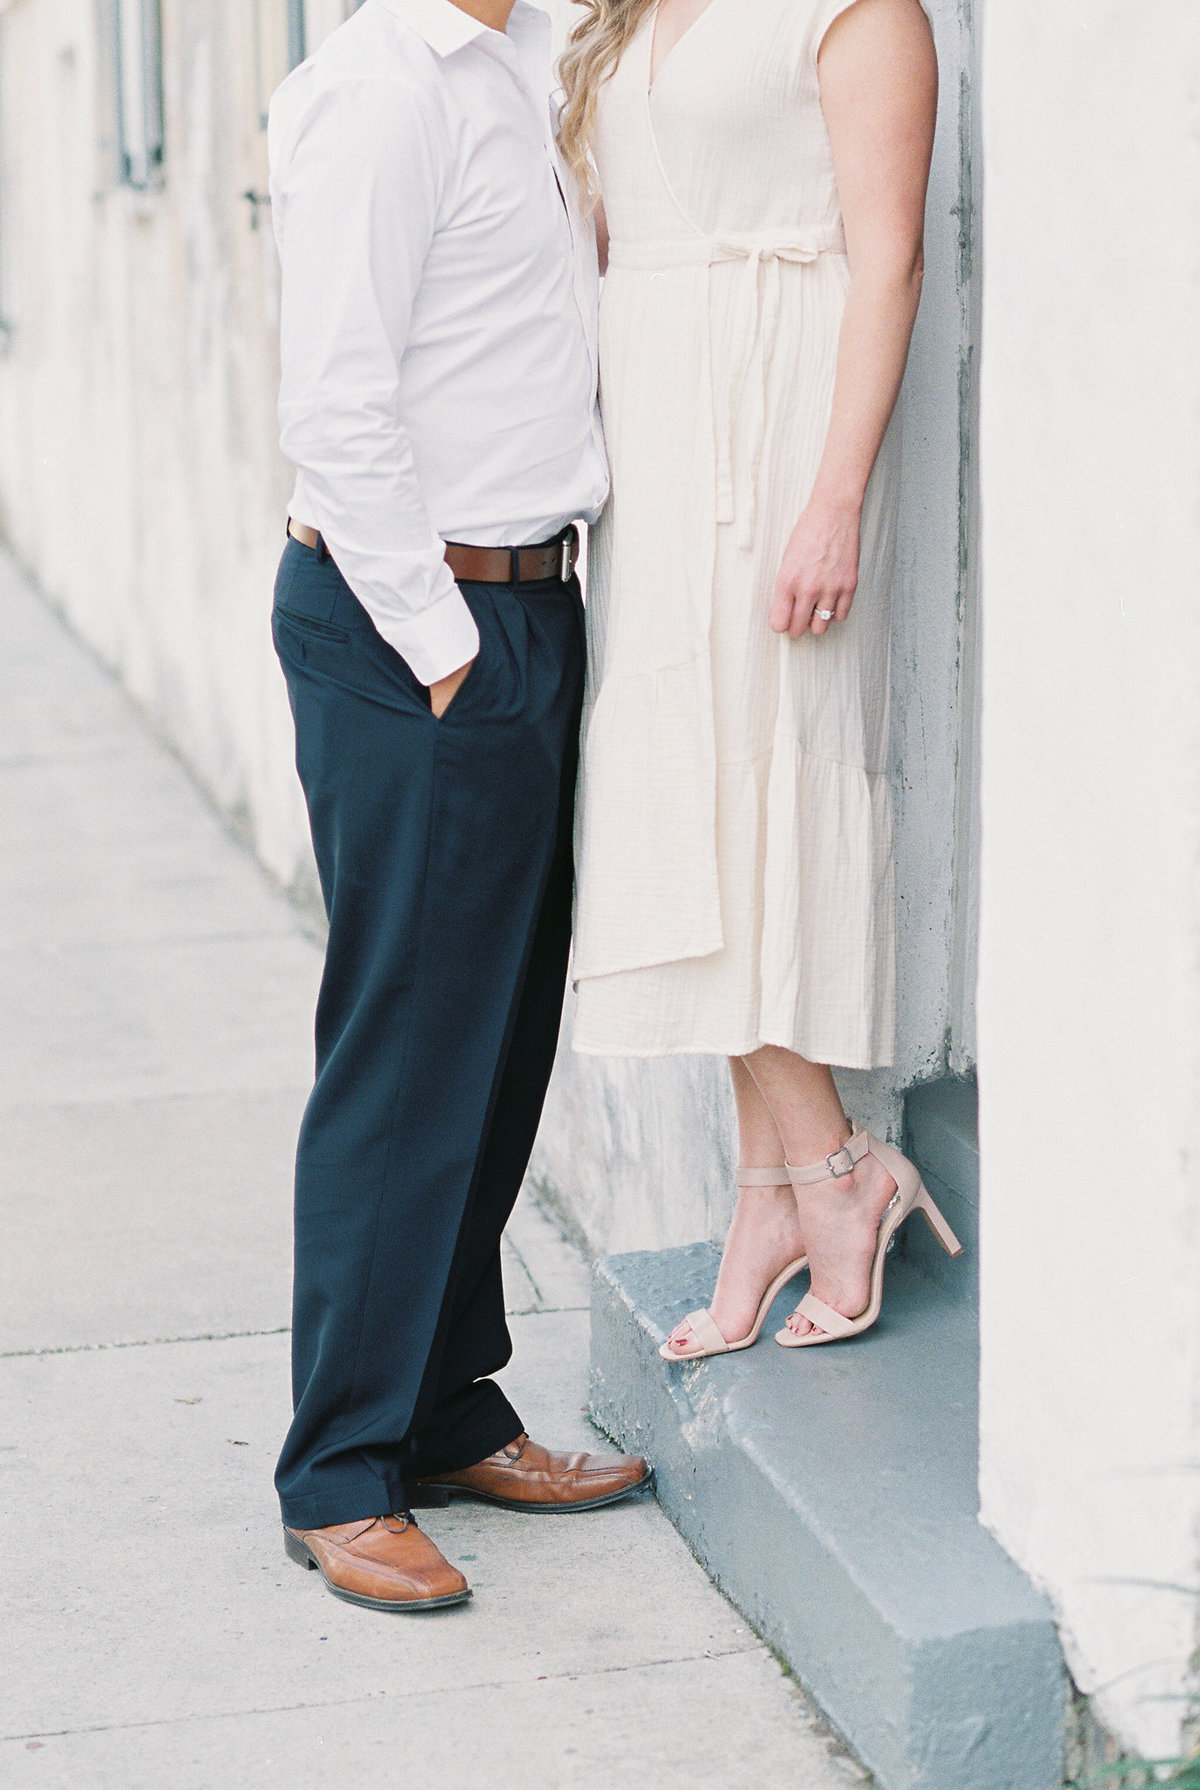 Charleston Engagement Photoshoot The Mills-17